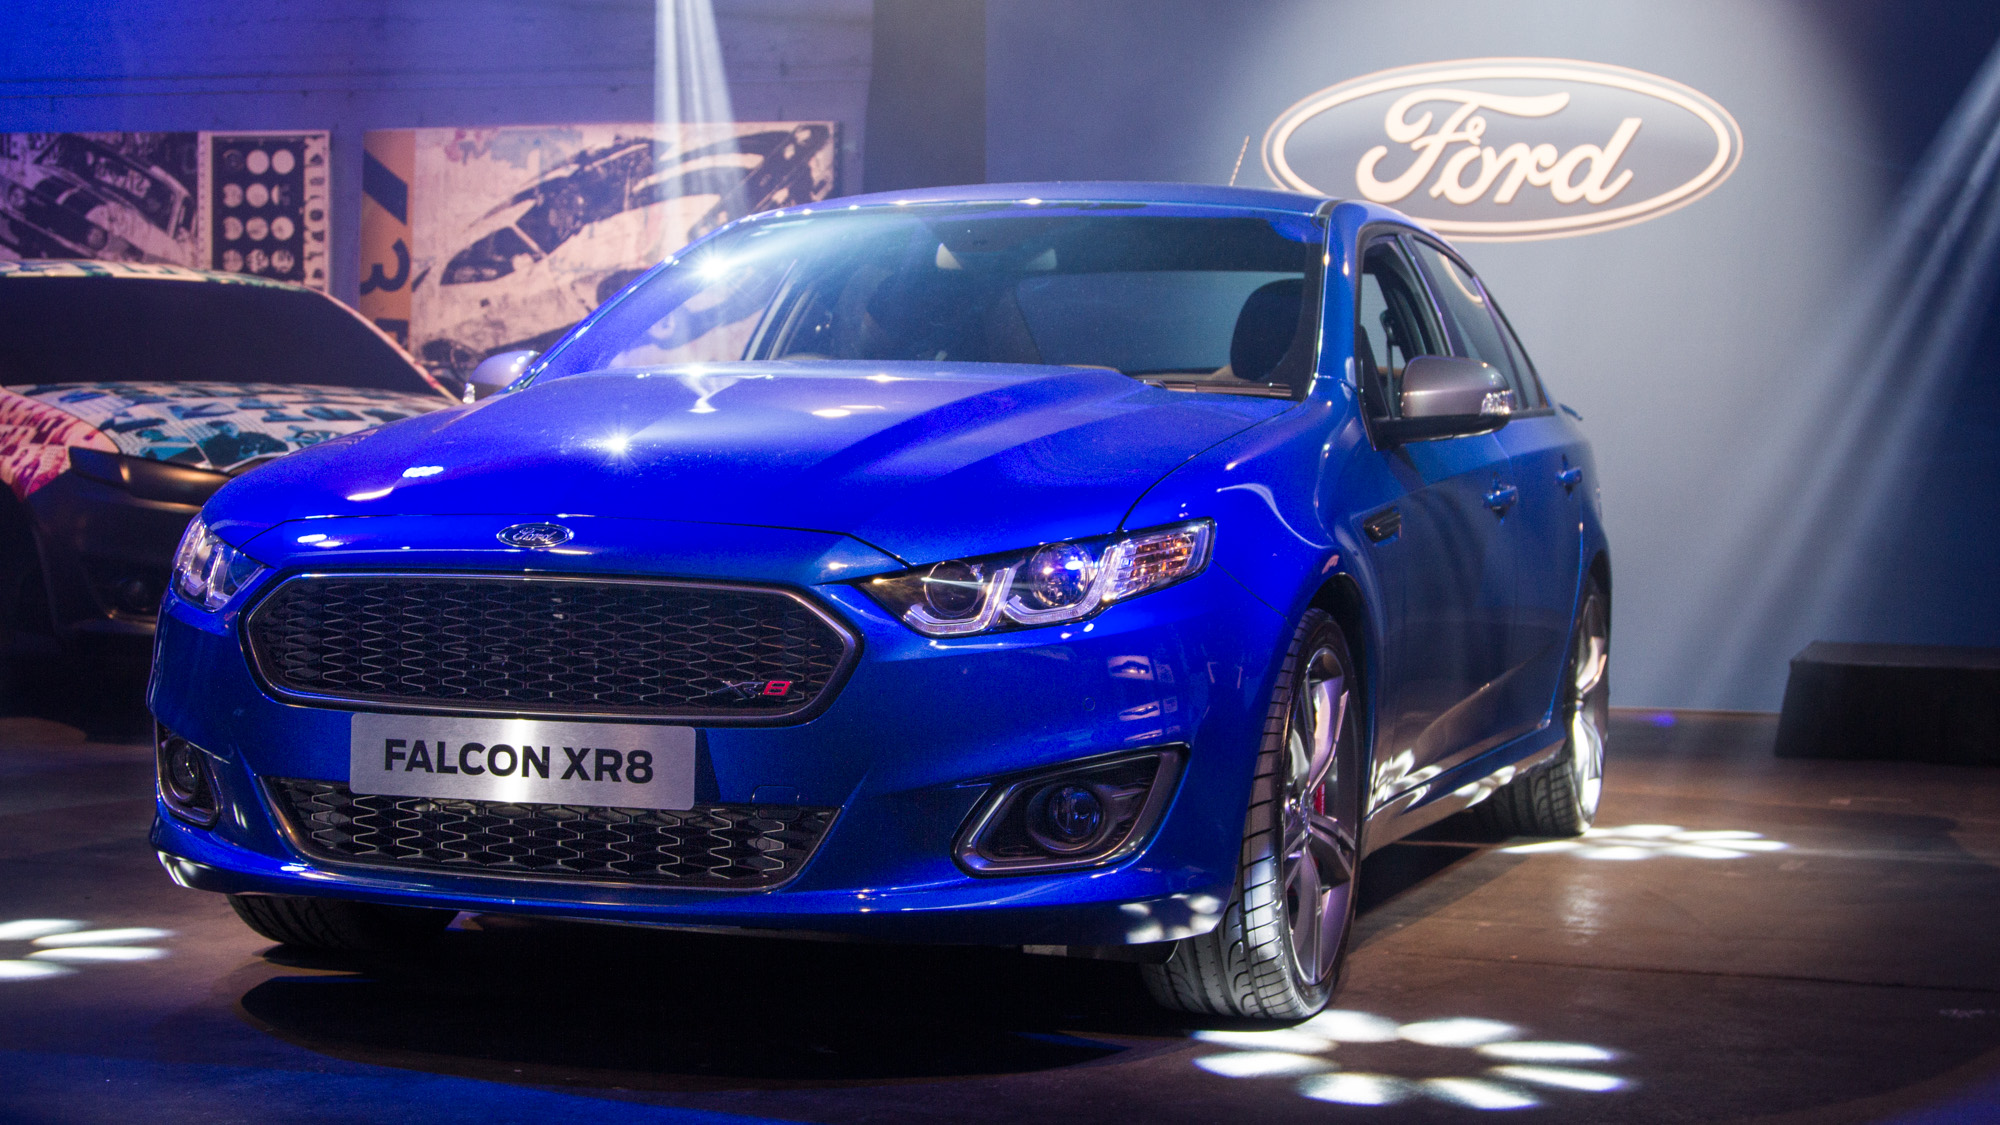 Ford Falcon XR8 unveiled in Melbourne - Photos (1 of 22)